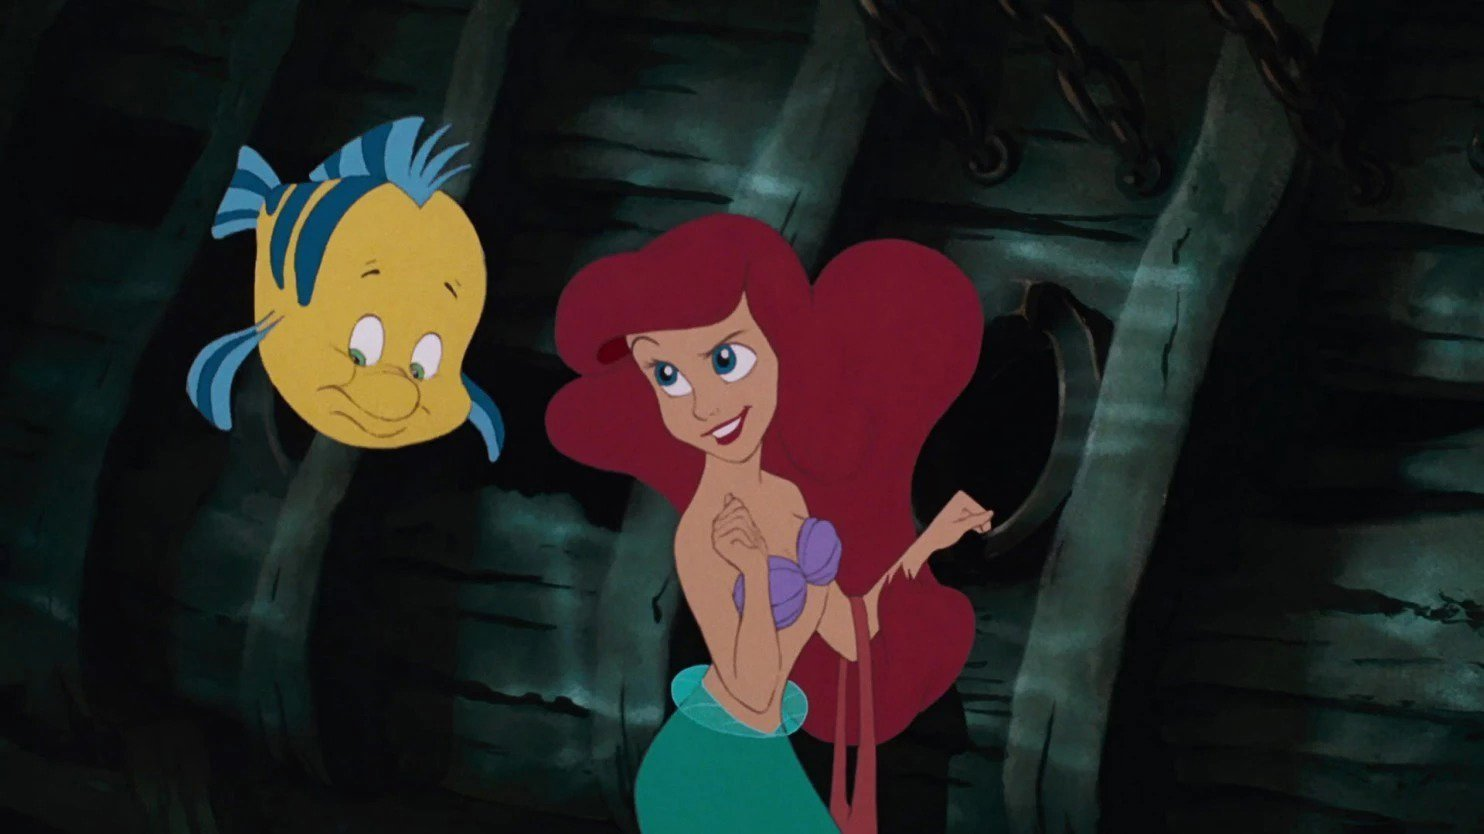 There's a major problem with 'The Little Mermaid' and other Disney movies